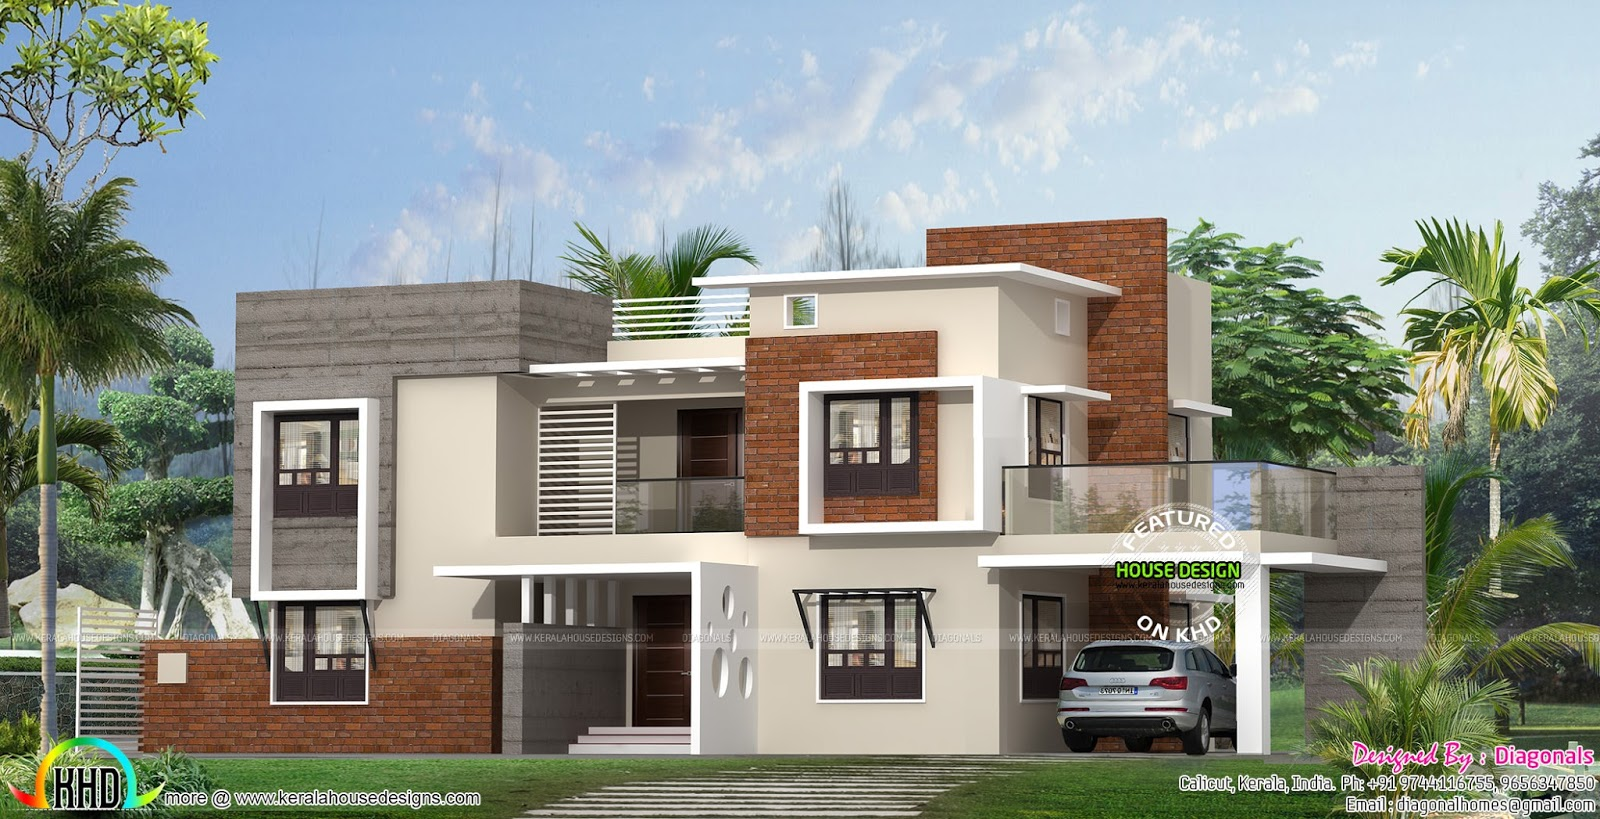 Box model modern flat roof home plan kerala home design for Contemporary model house